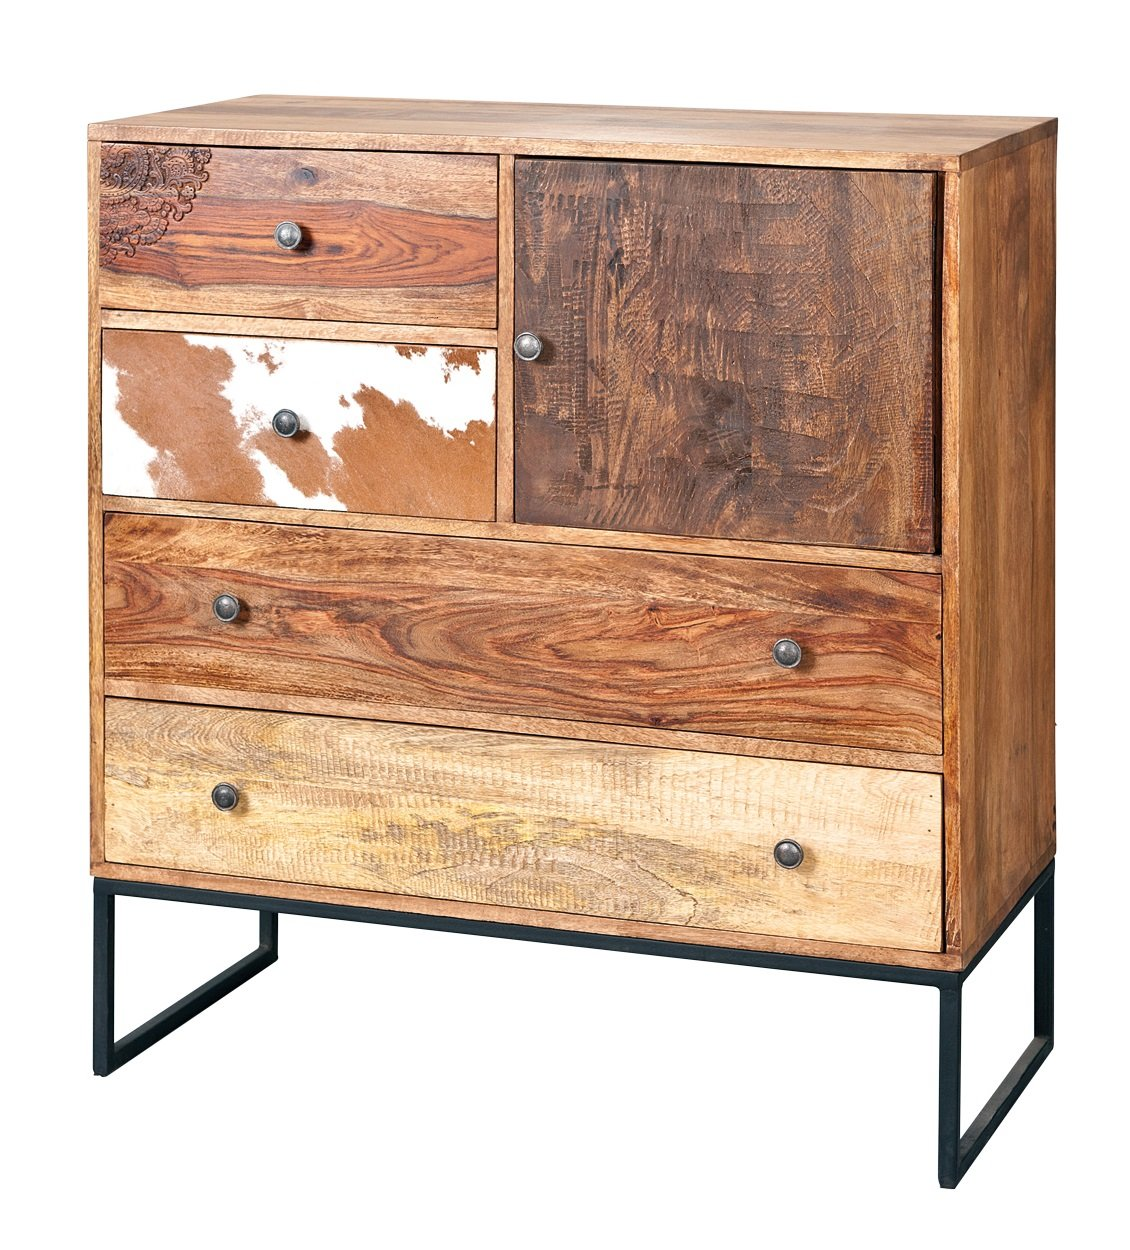 85400095 regall wooden chest of%20drawers main - How To Create Unique Interior With Vintage Furniture, Home Decor And Accessories